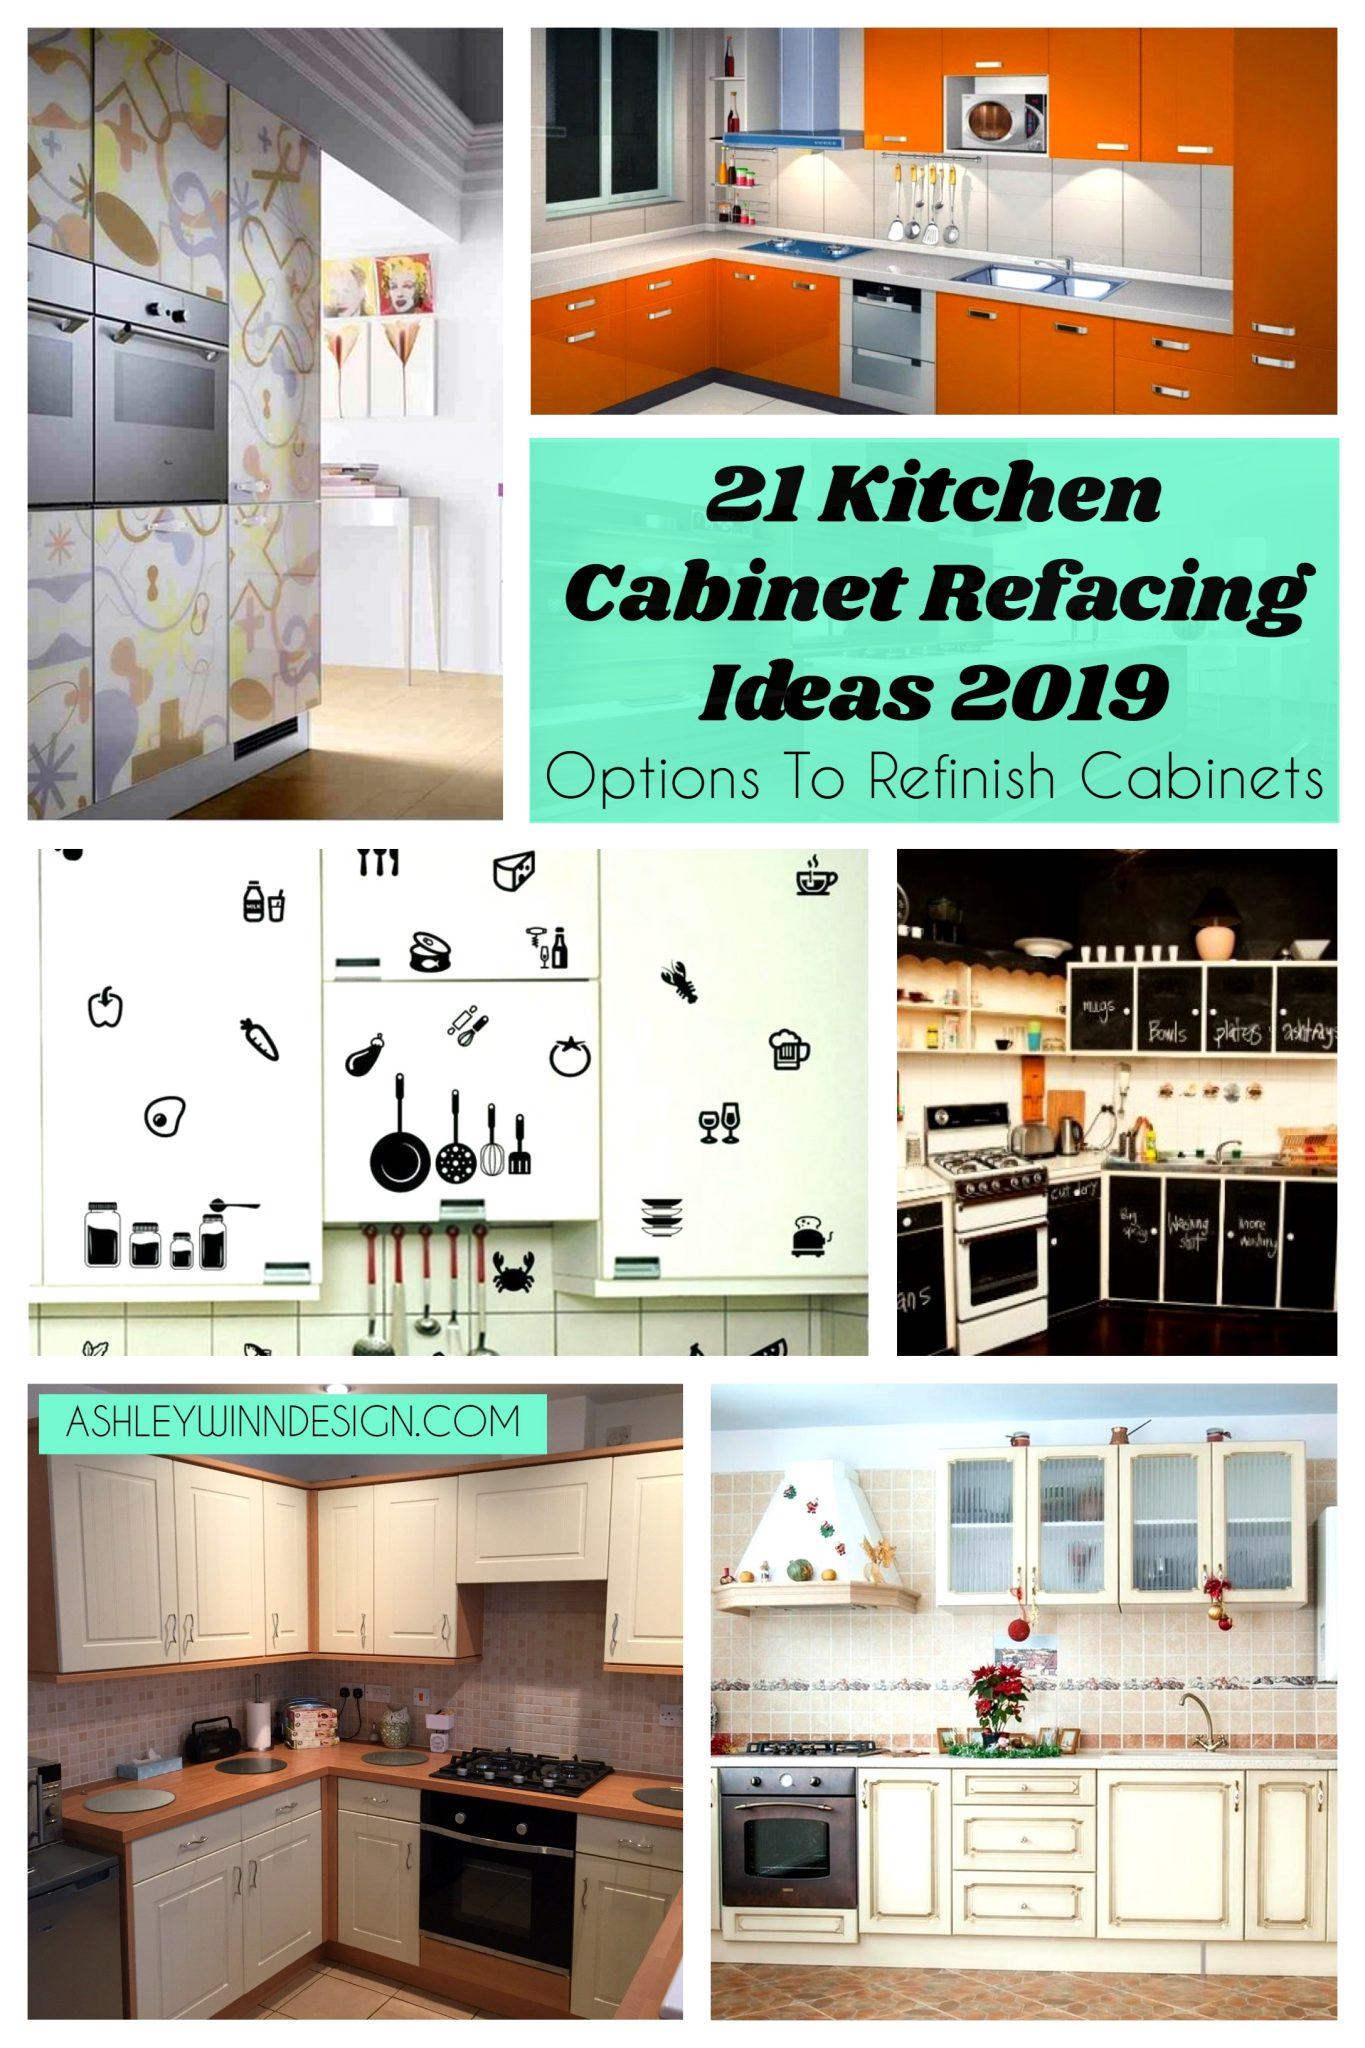 275 : kitchen cabinet refacing - amorenlinea.org